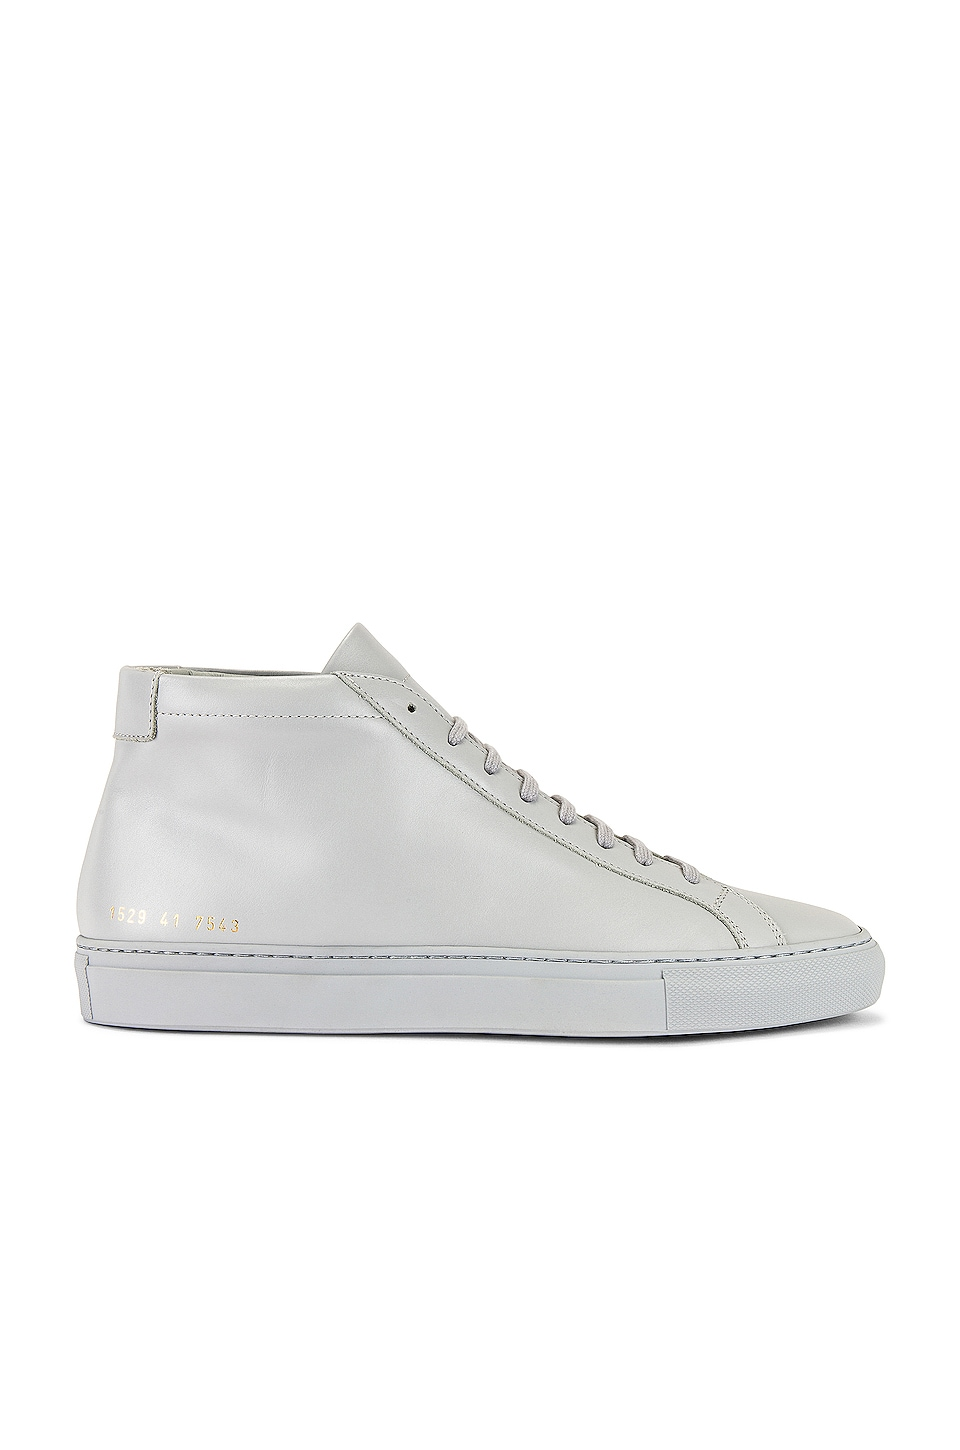 Common Projects Original Leather